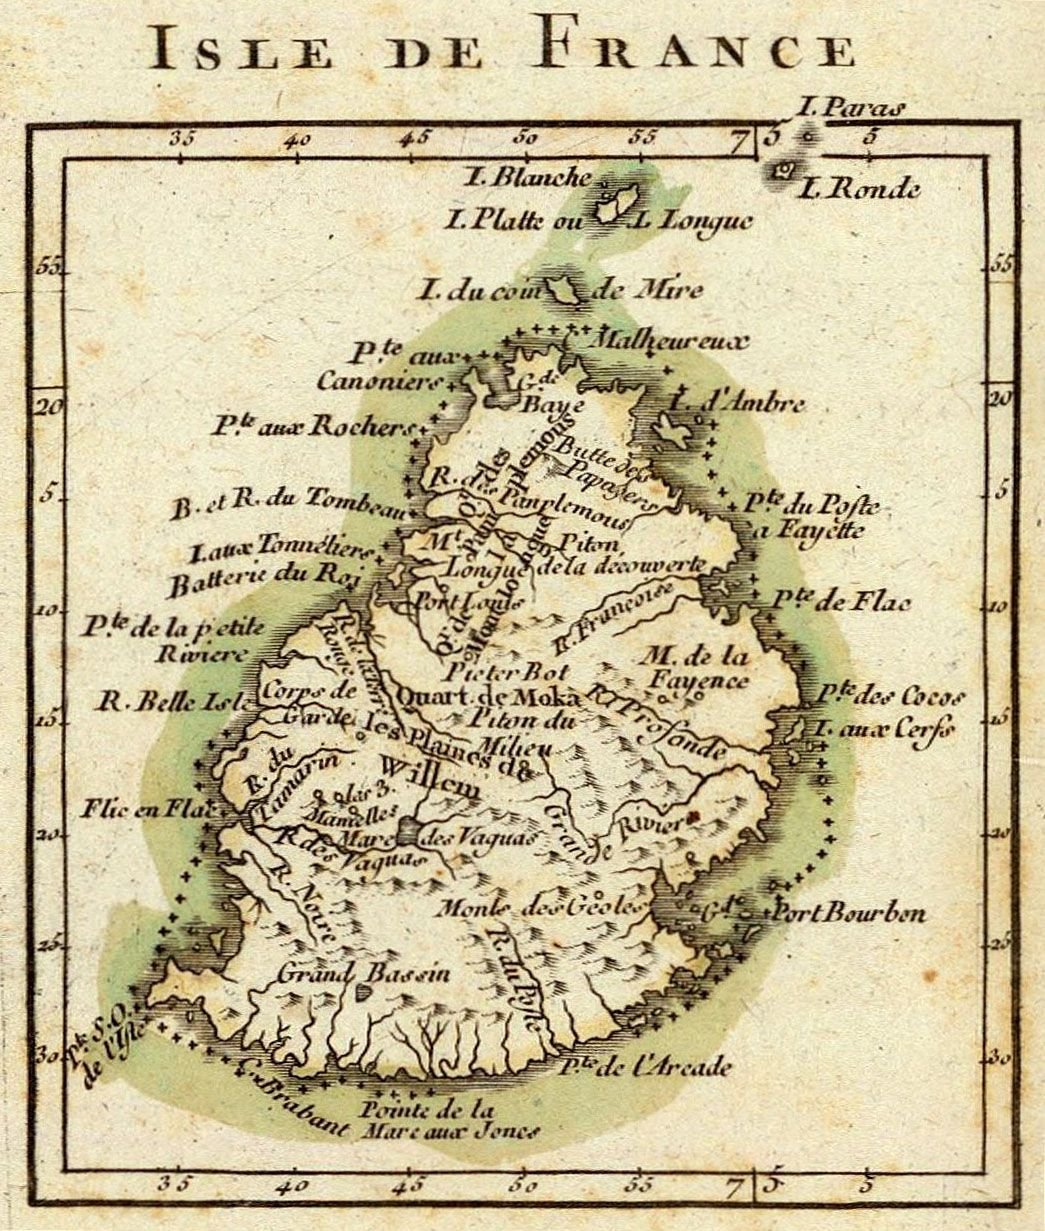 For those of you who are history buffs, this map gives a ... on map of costa rica, map of hawaii, map of spain, map of malaysia, map of south pacific, map of bali, map of austrailia, map of fiji, map of brazil, map of bahamas, map of bora bora, map of kwajalein, map of moorea, map of carribean, map of switzerland, map of new zealand, map of thailand, map of french polynesia, map of pacific ocean, map of seychelles,